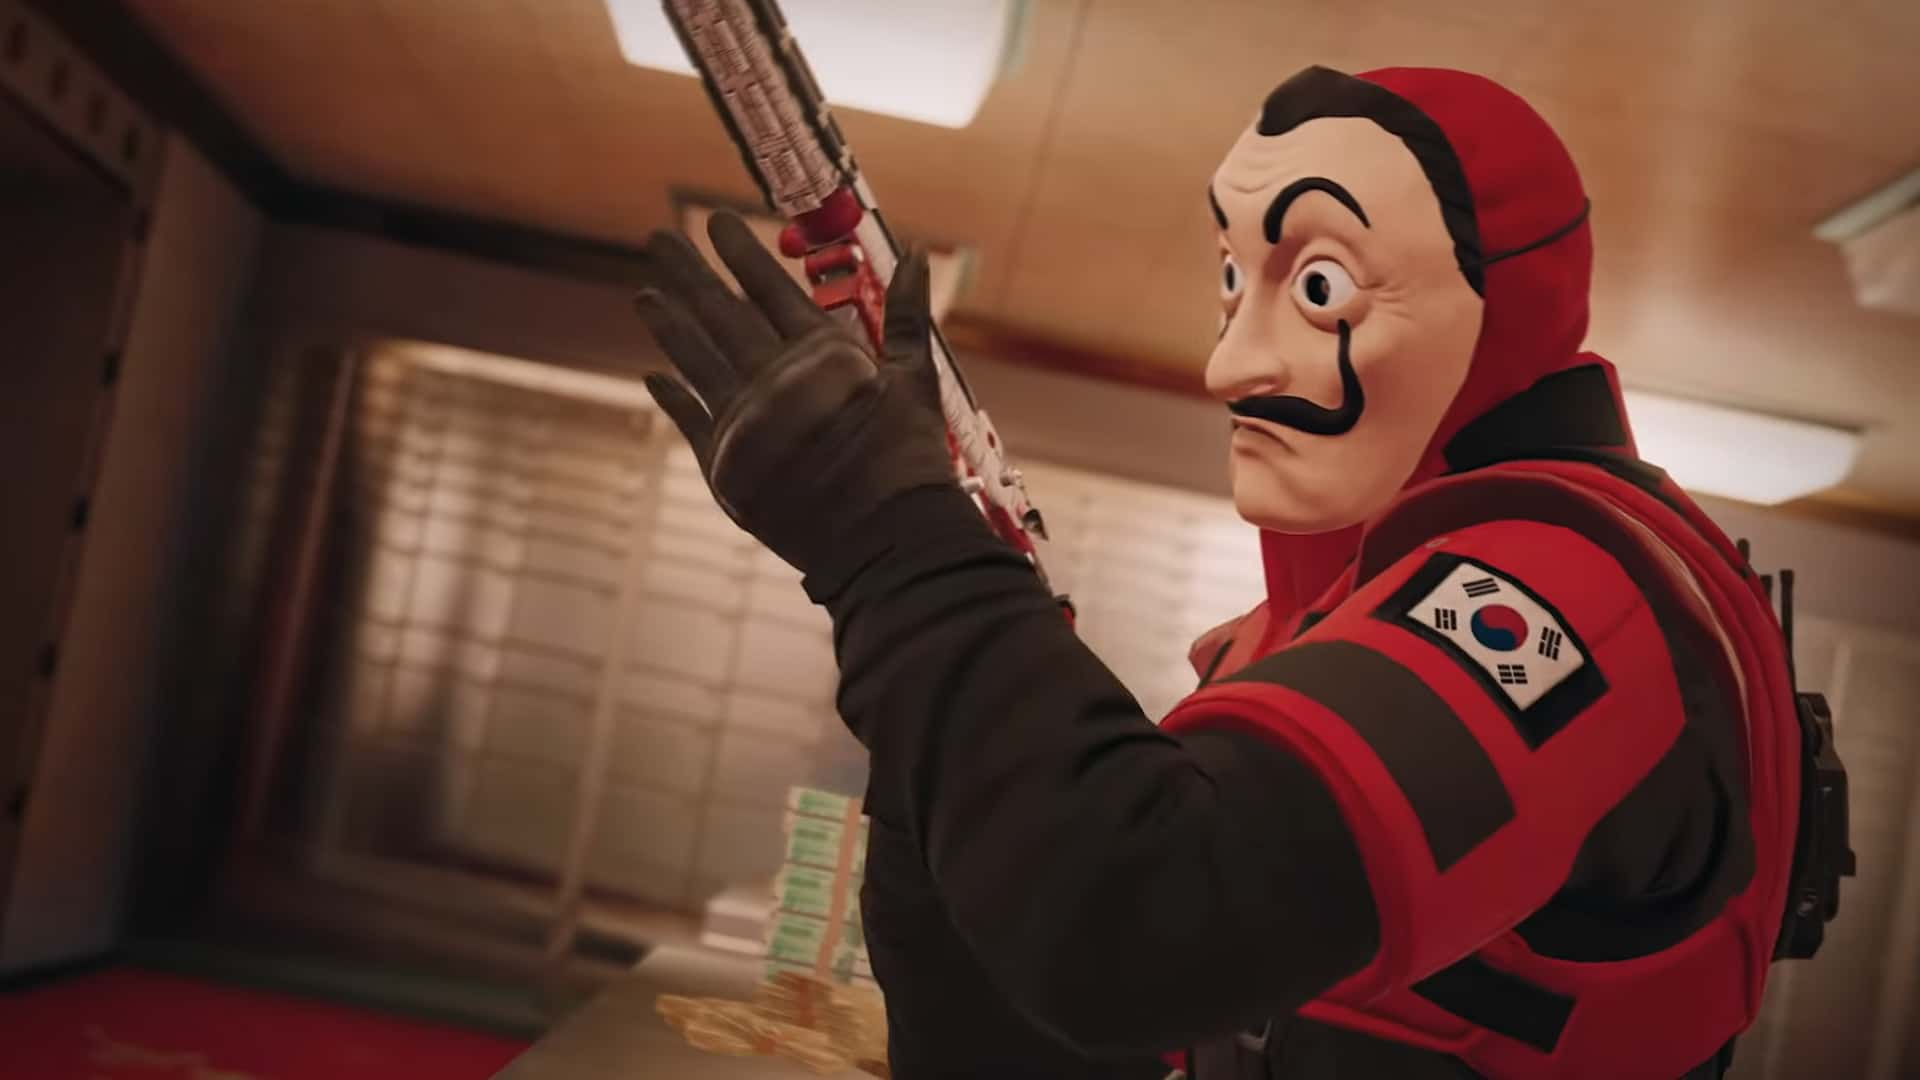 Rainbow Six Siege gets a free weekend and a new event to promote Netflix's Money Heist